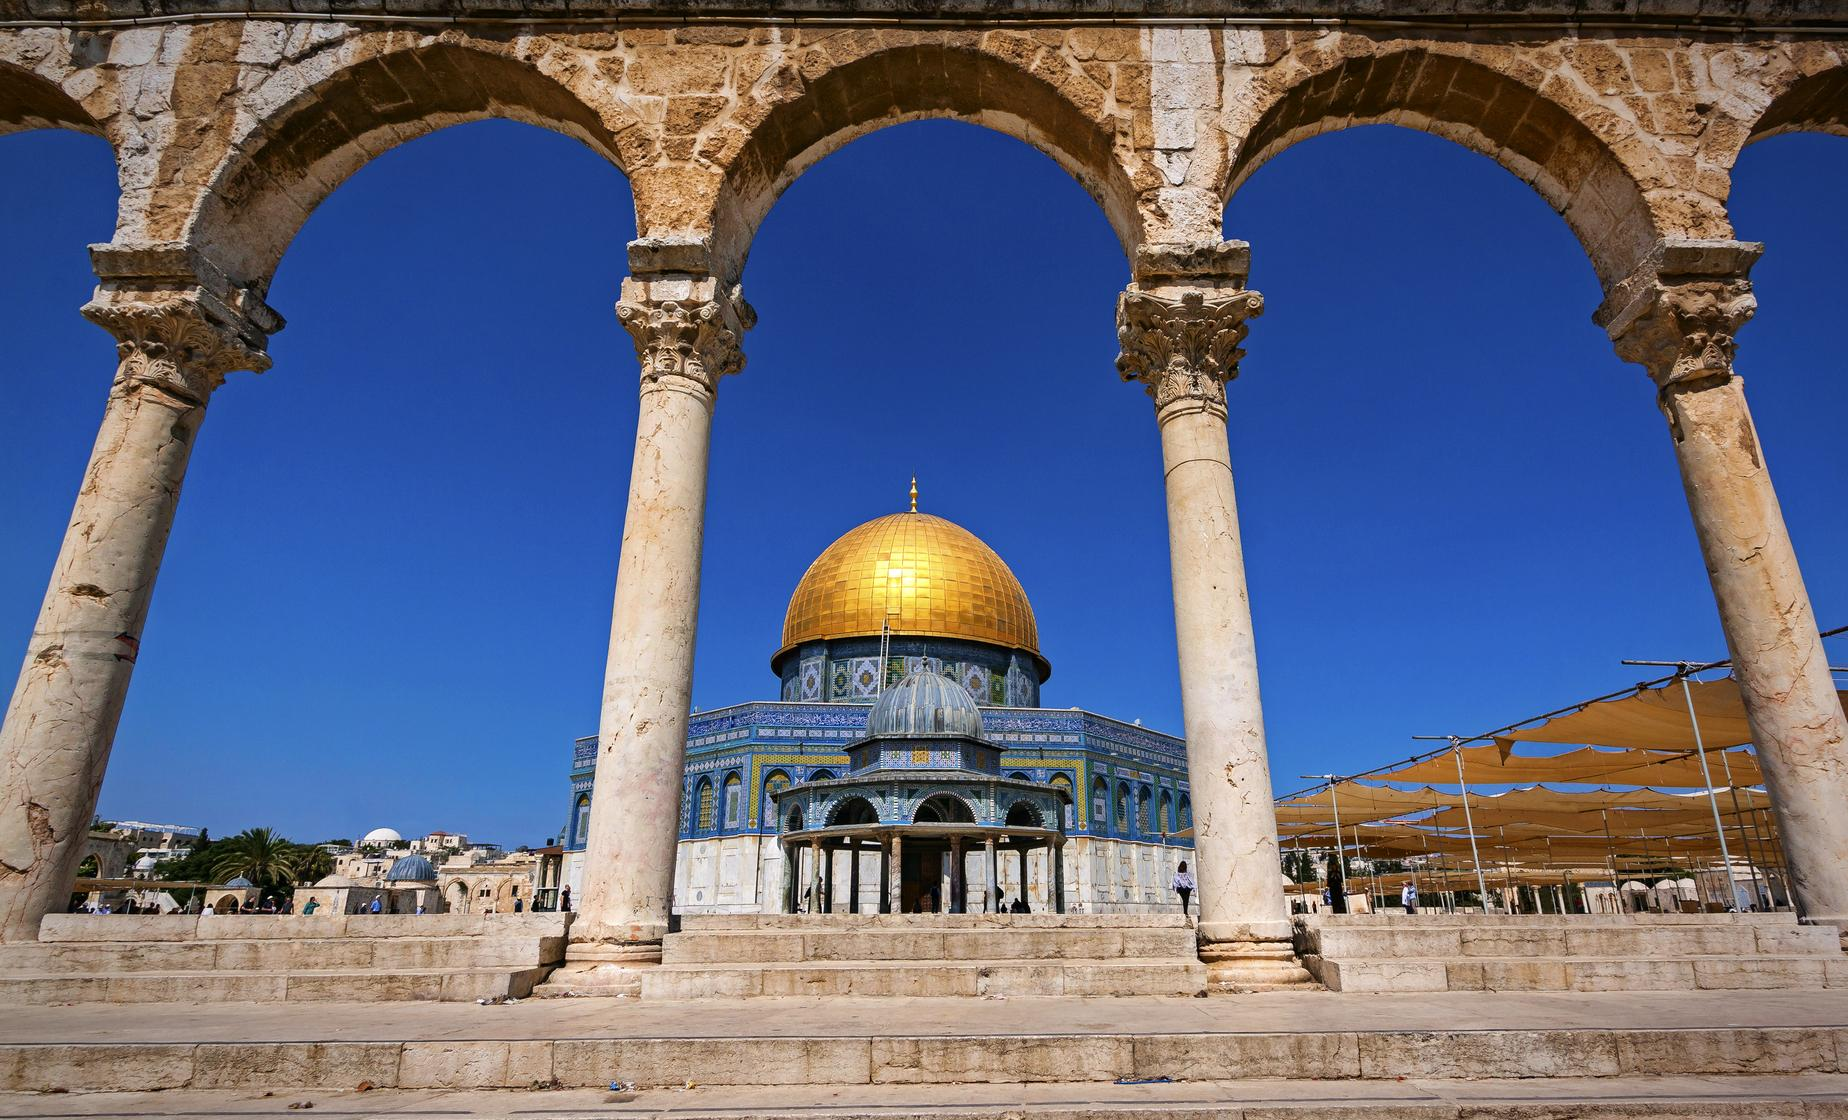 Private Day in Jerusalem Tour from Haifa (Judean Hills, Mt. Zion, Tomb of King David)